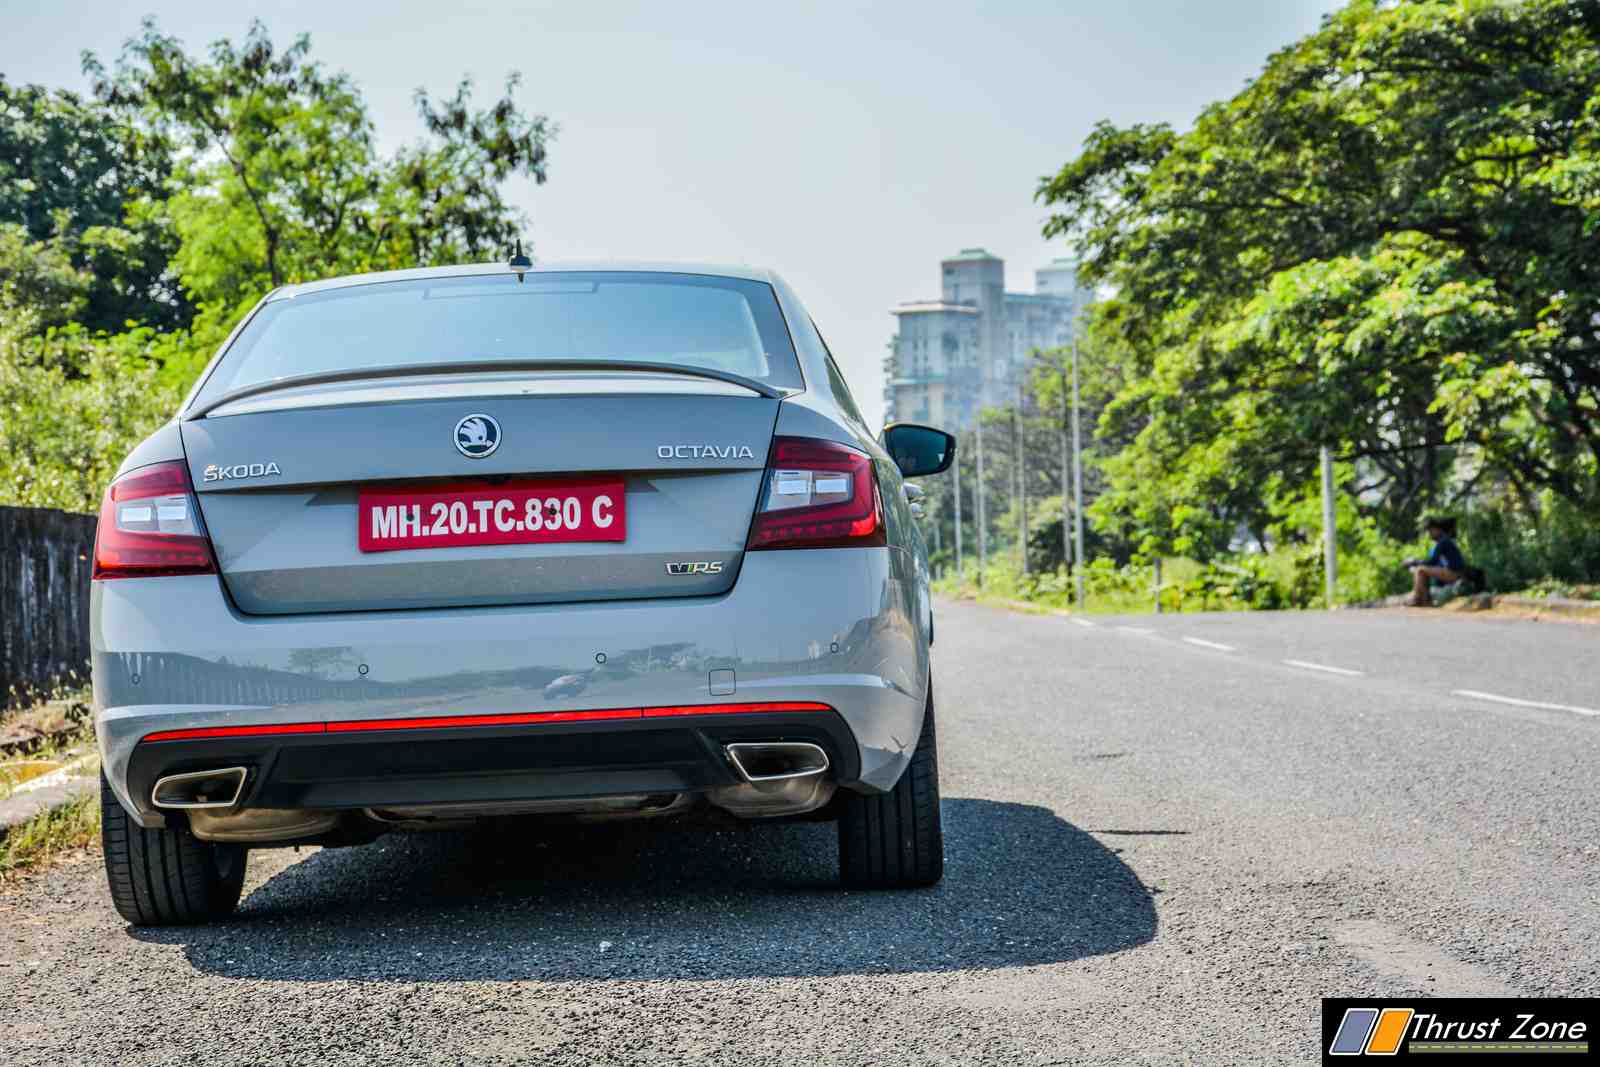 https://www.thrustzone.com/wp-content/uploads/2017/10/Skoda-Octavia-RS-230-India-Review-14.jpg